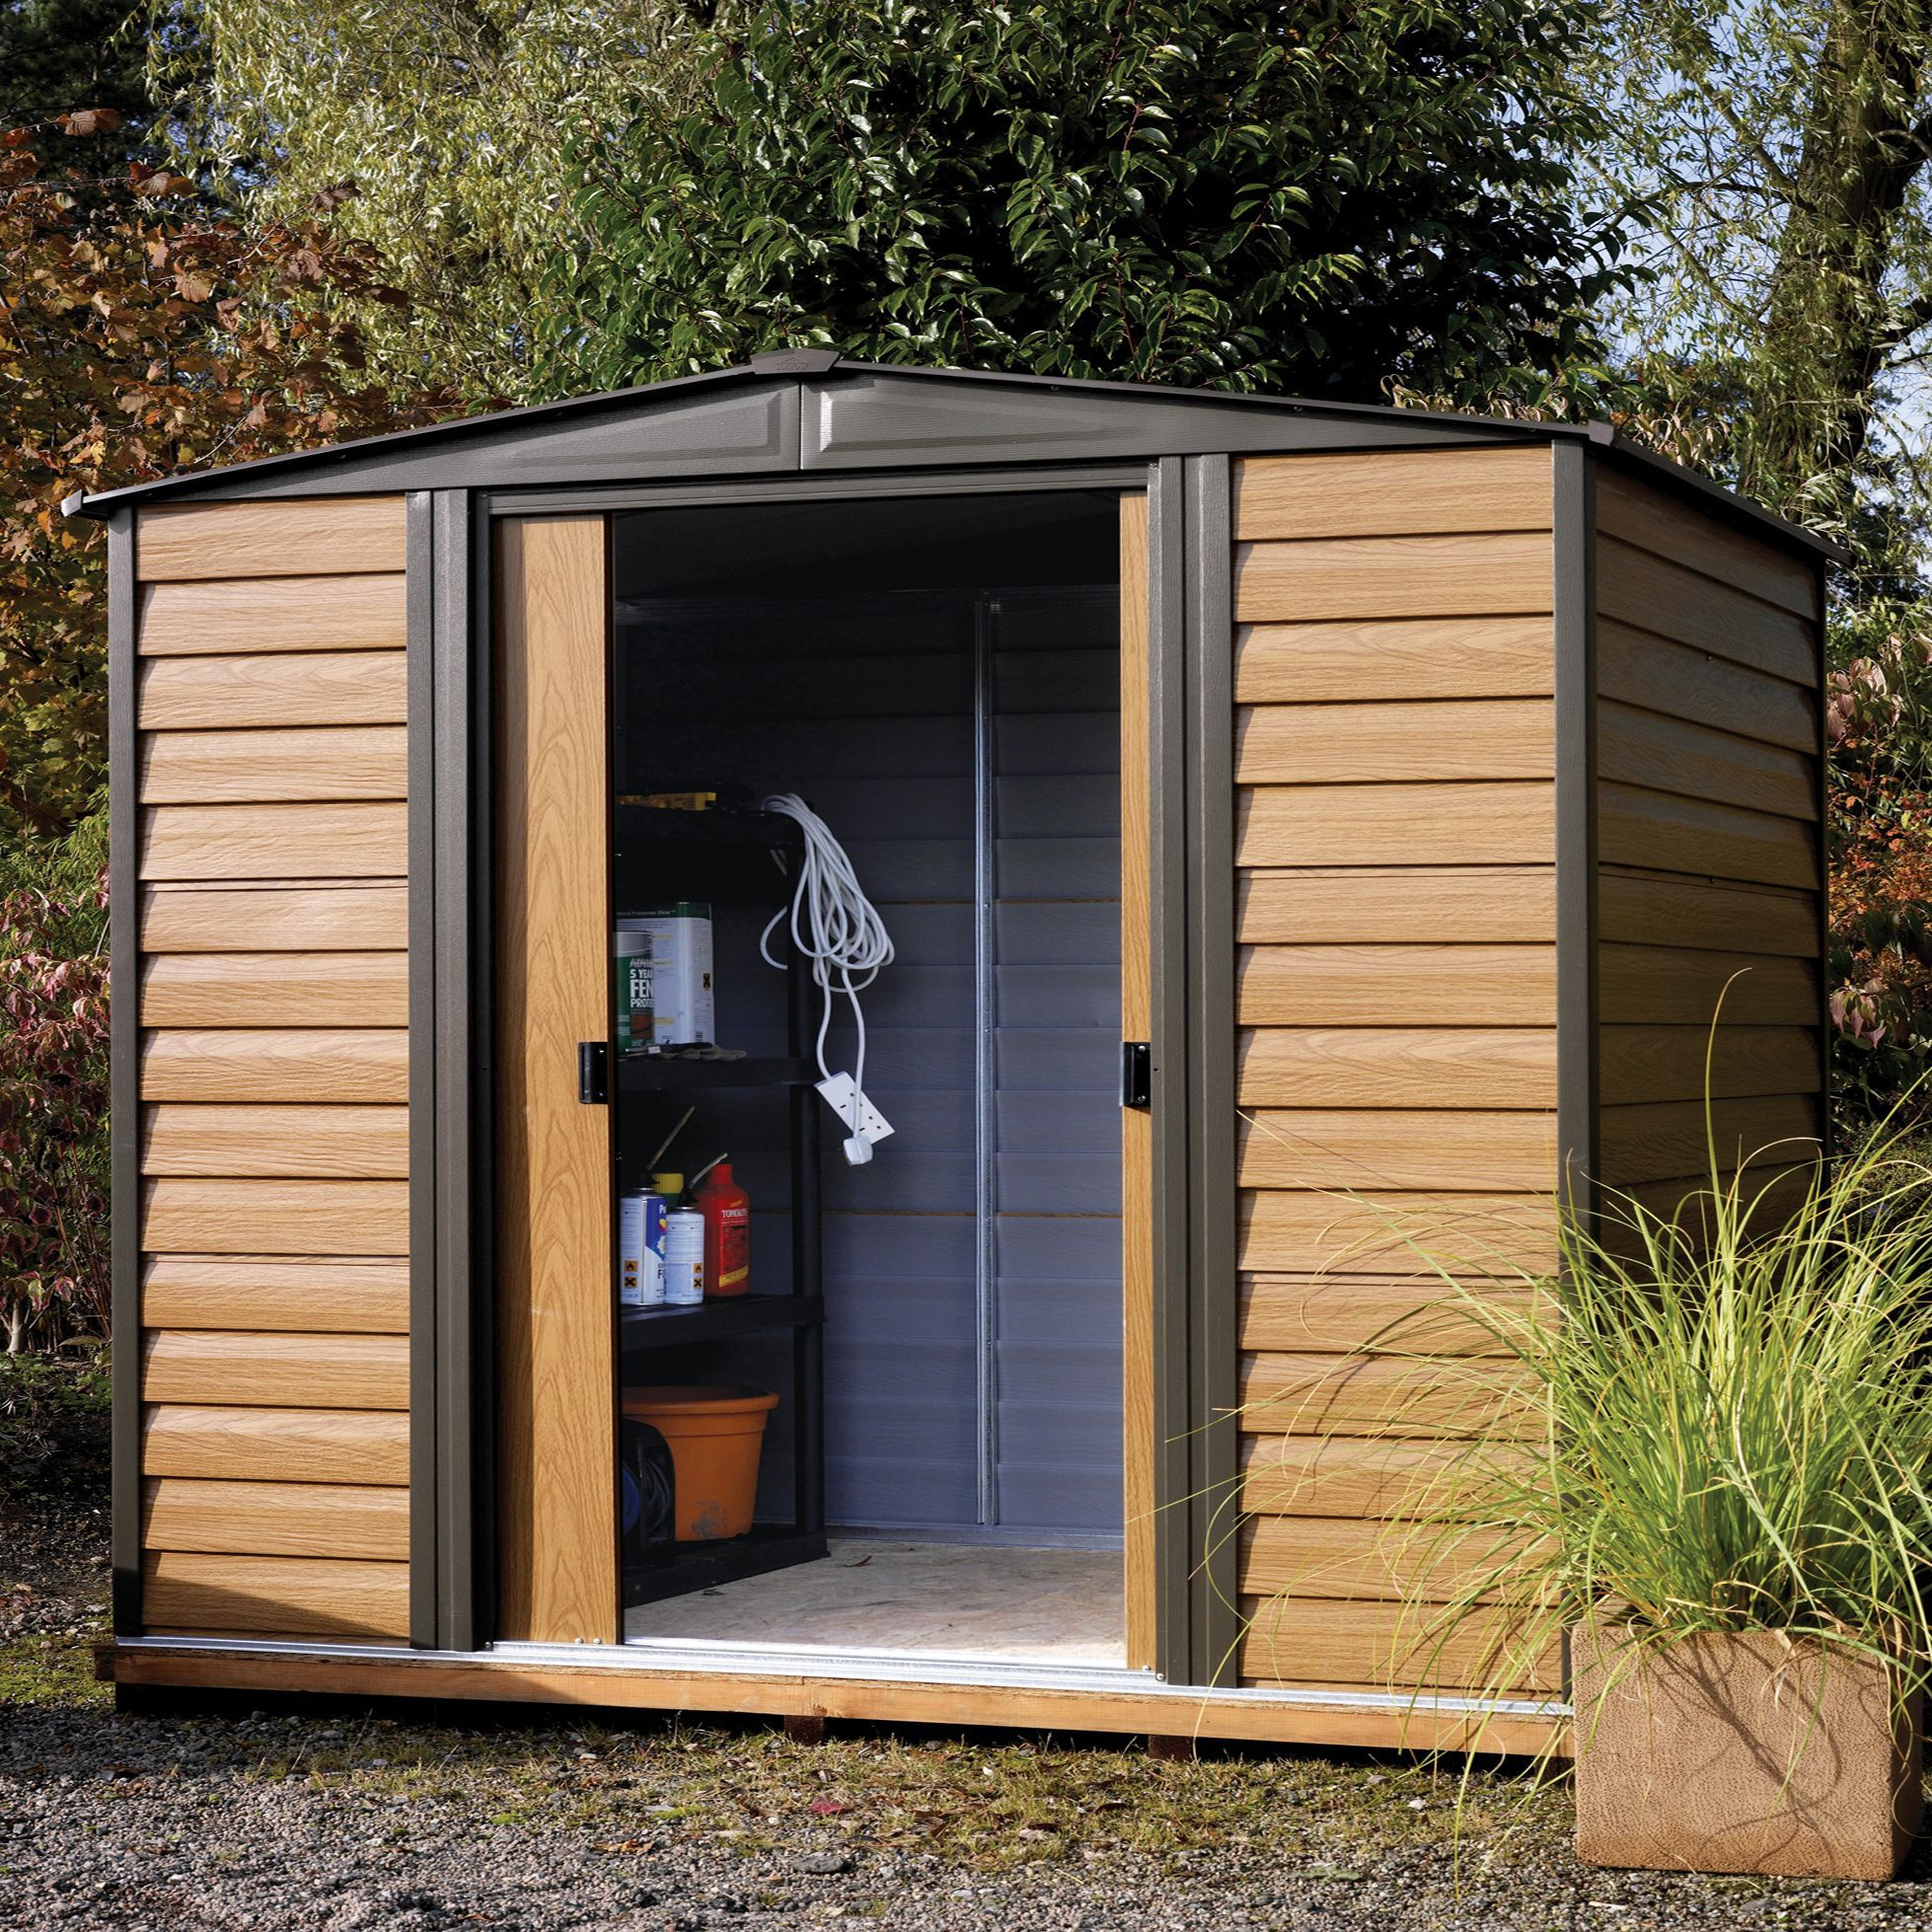 Garden Sheds B Q 8x6 woodvale apex metal shed with assembly service | departments